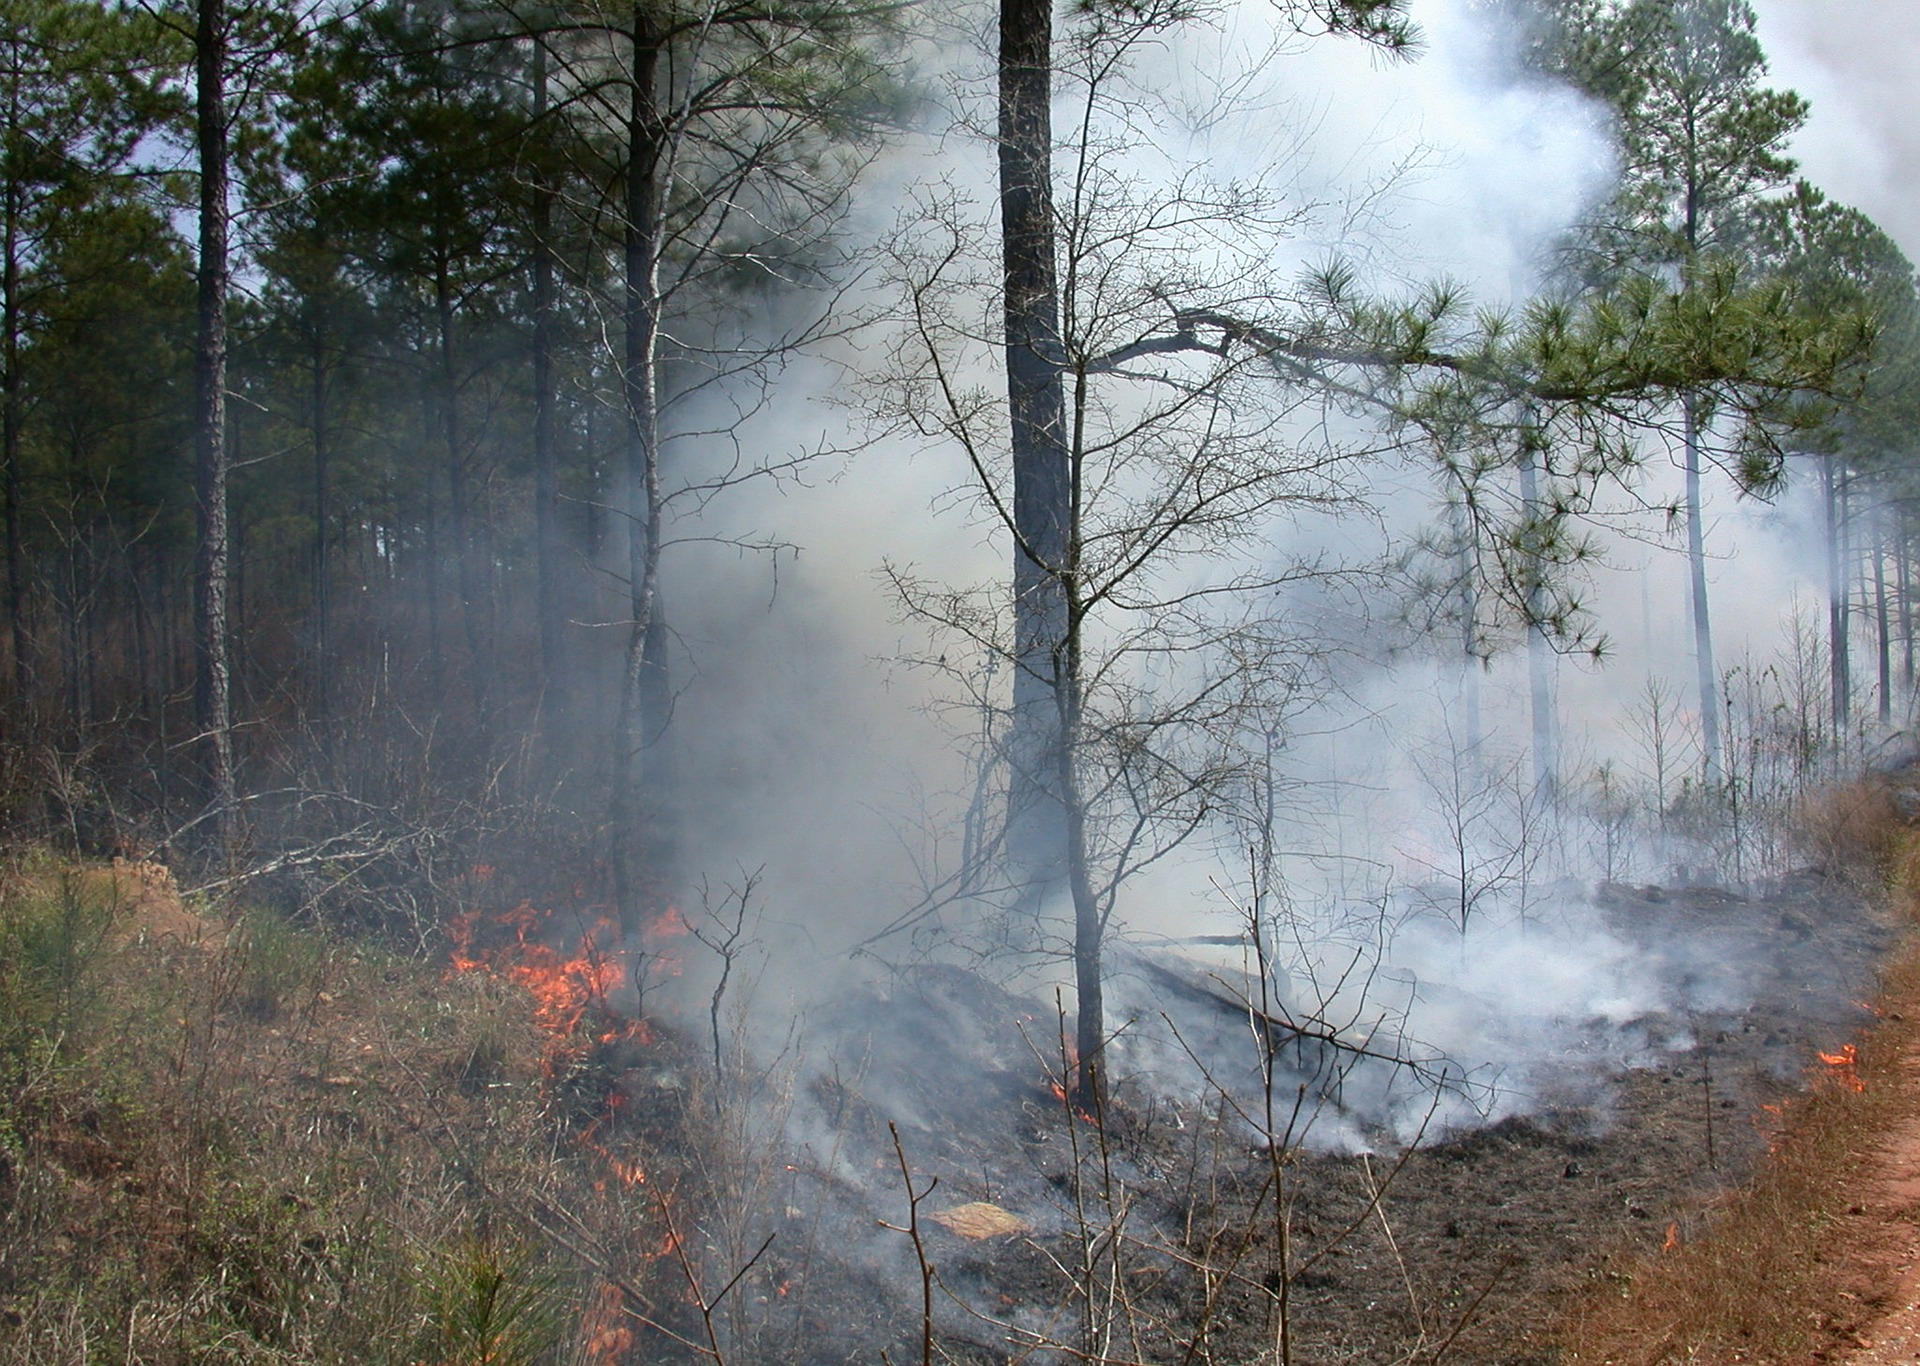 Slash and Burn Agriculture practise in Chiang Mai